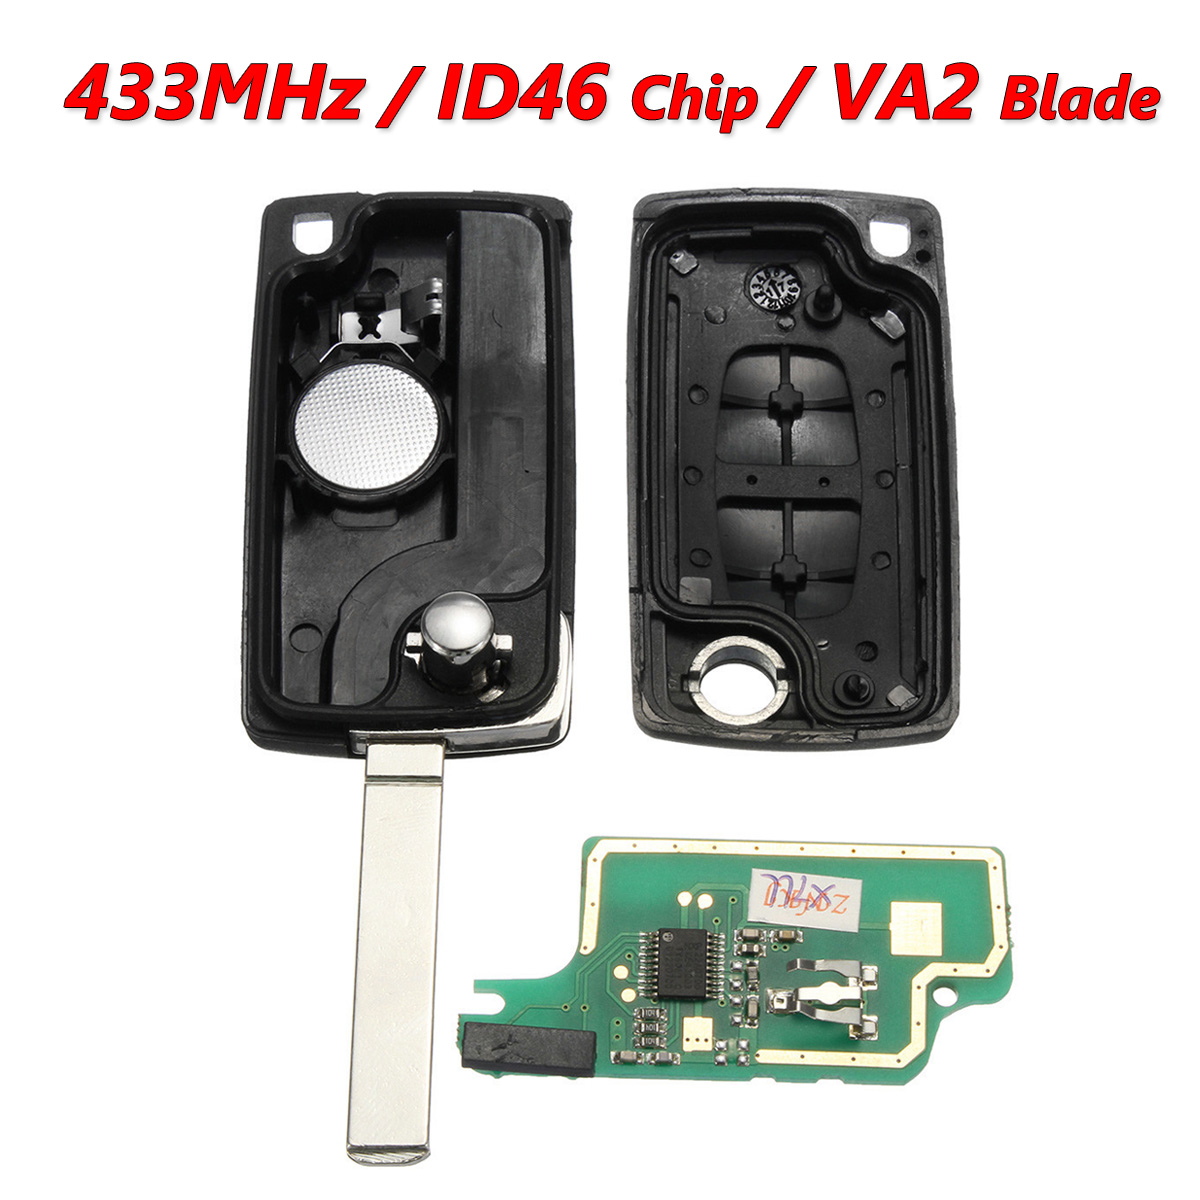 neufu 2 bouton cl transpondeur 433mhz id46 chip va2 pour peugeot 207 407 citroen c2 achat. Black Bedroom Furniture Sets. Home Design Ideas